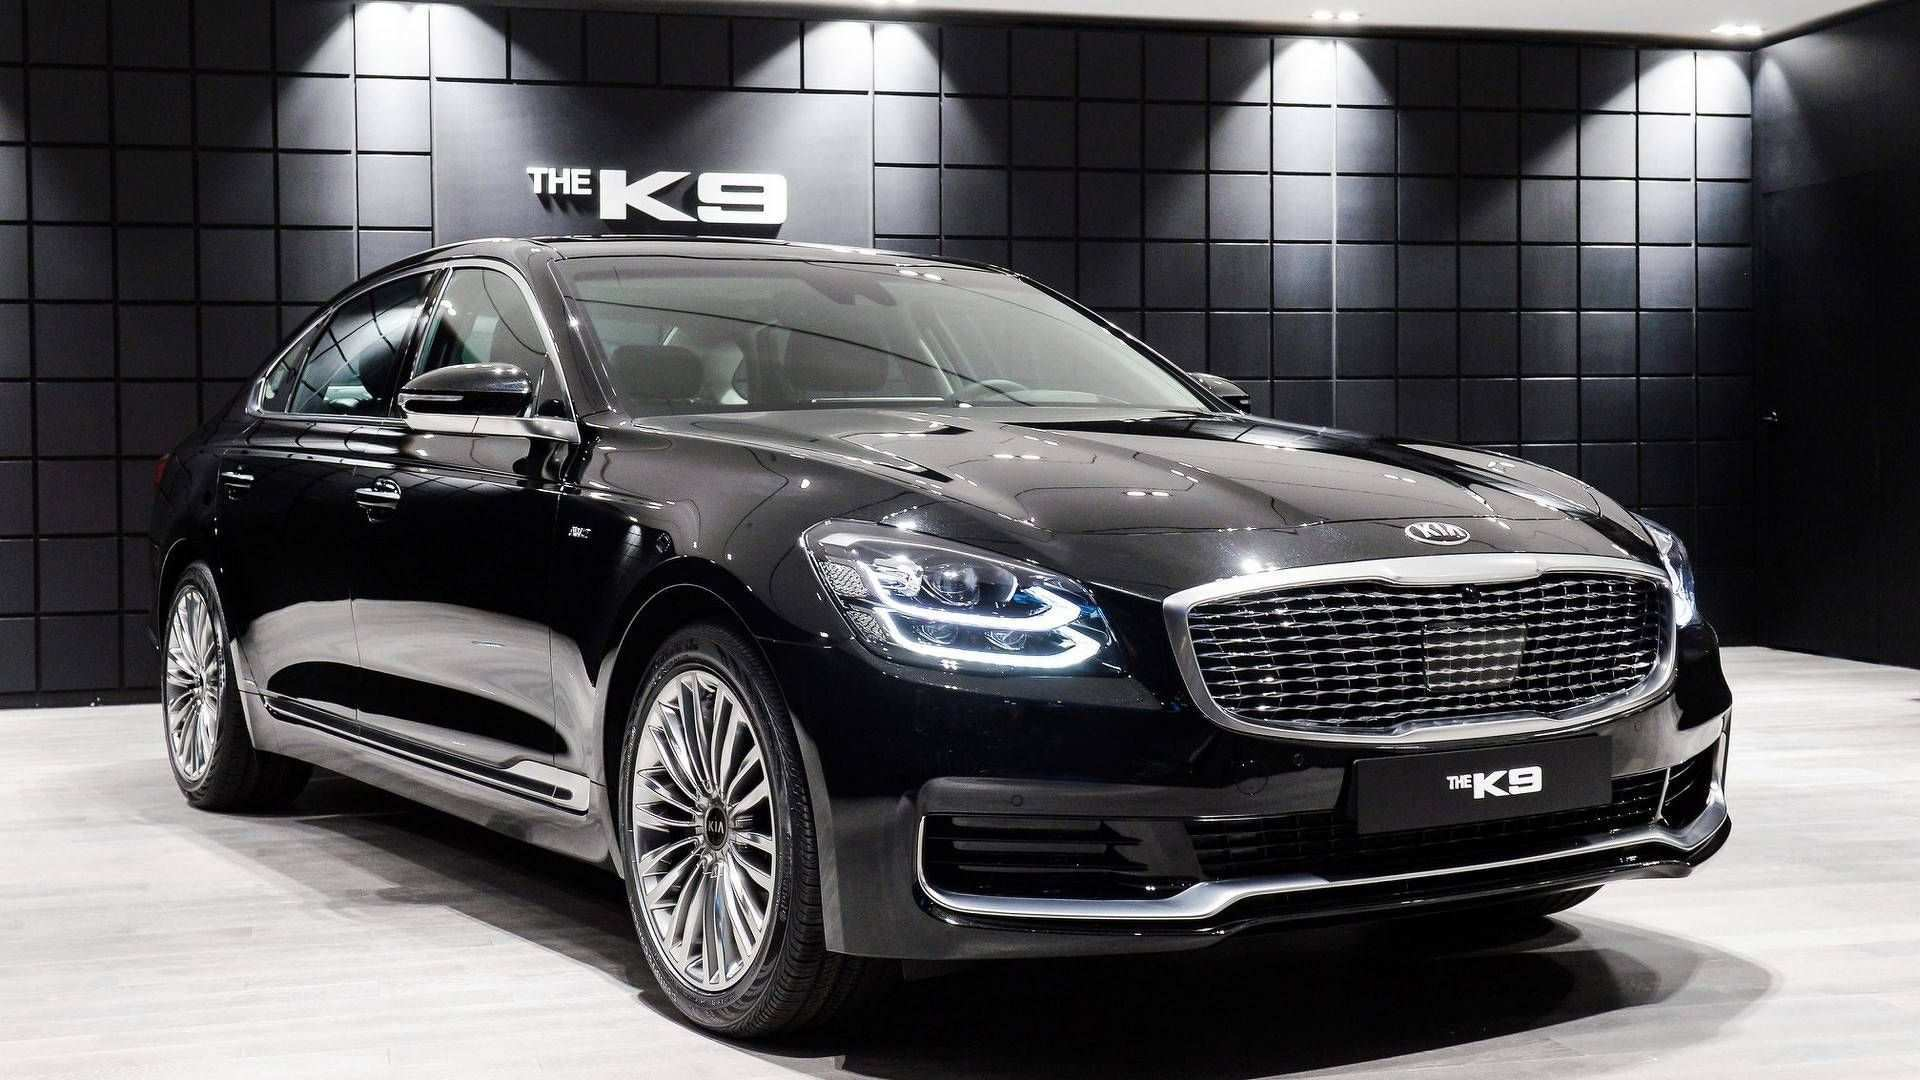 65 The New Kia Quoris 2019 Specs First Drive Price by New Kia Quoris 2019 Specs First Drive